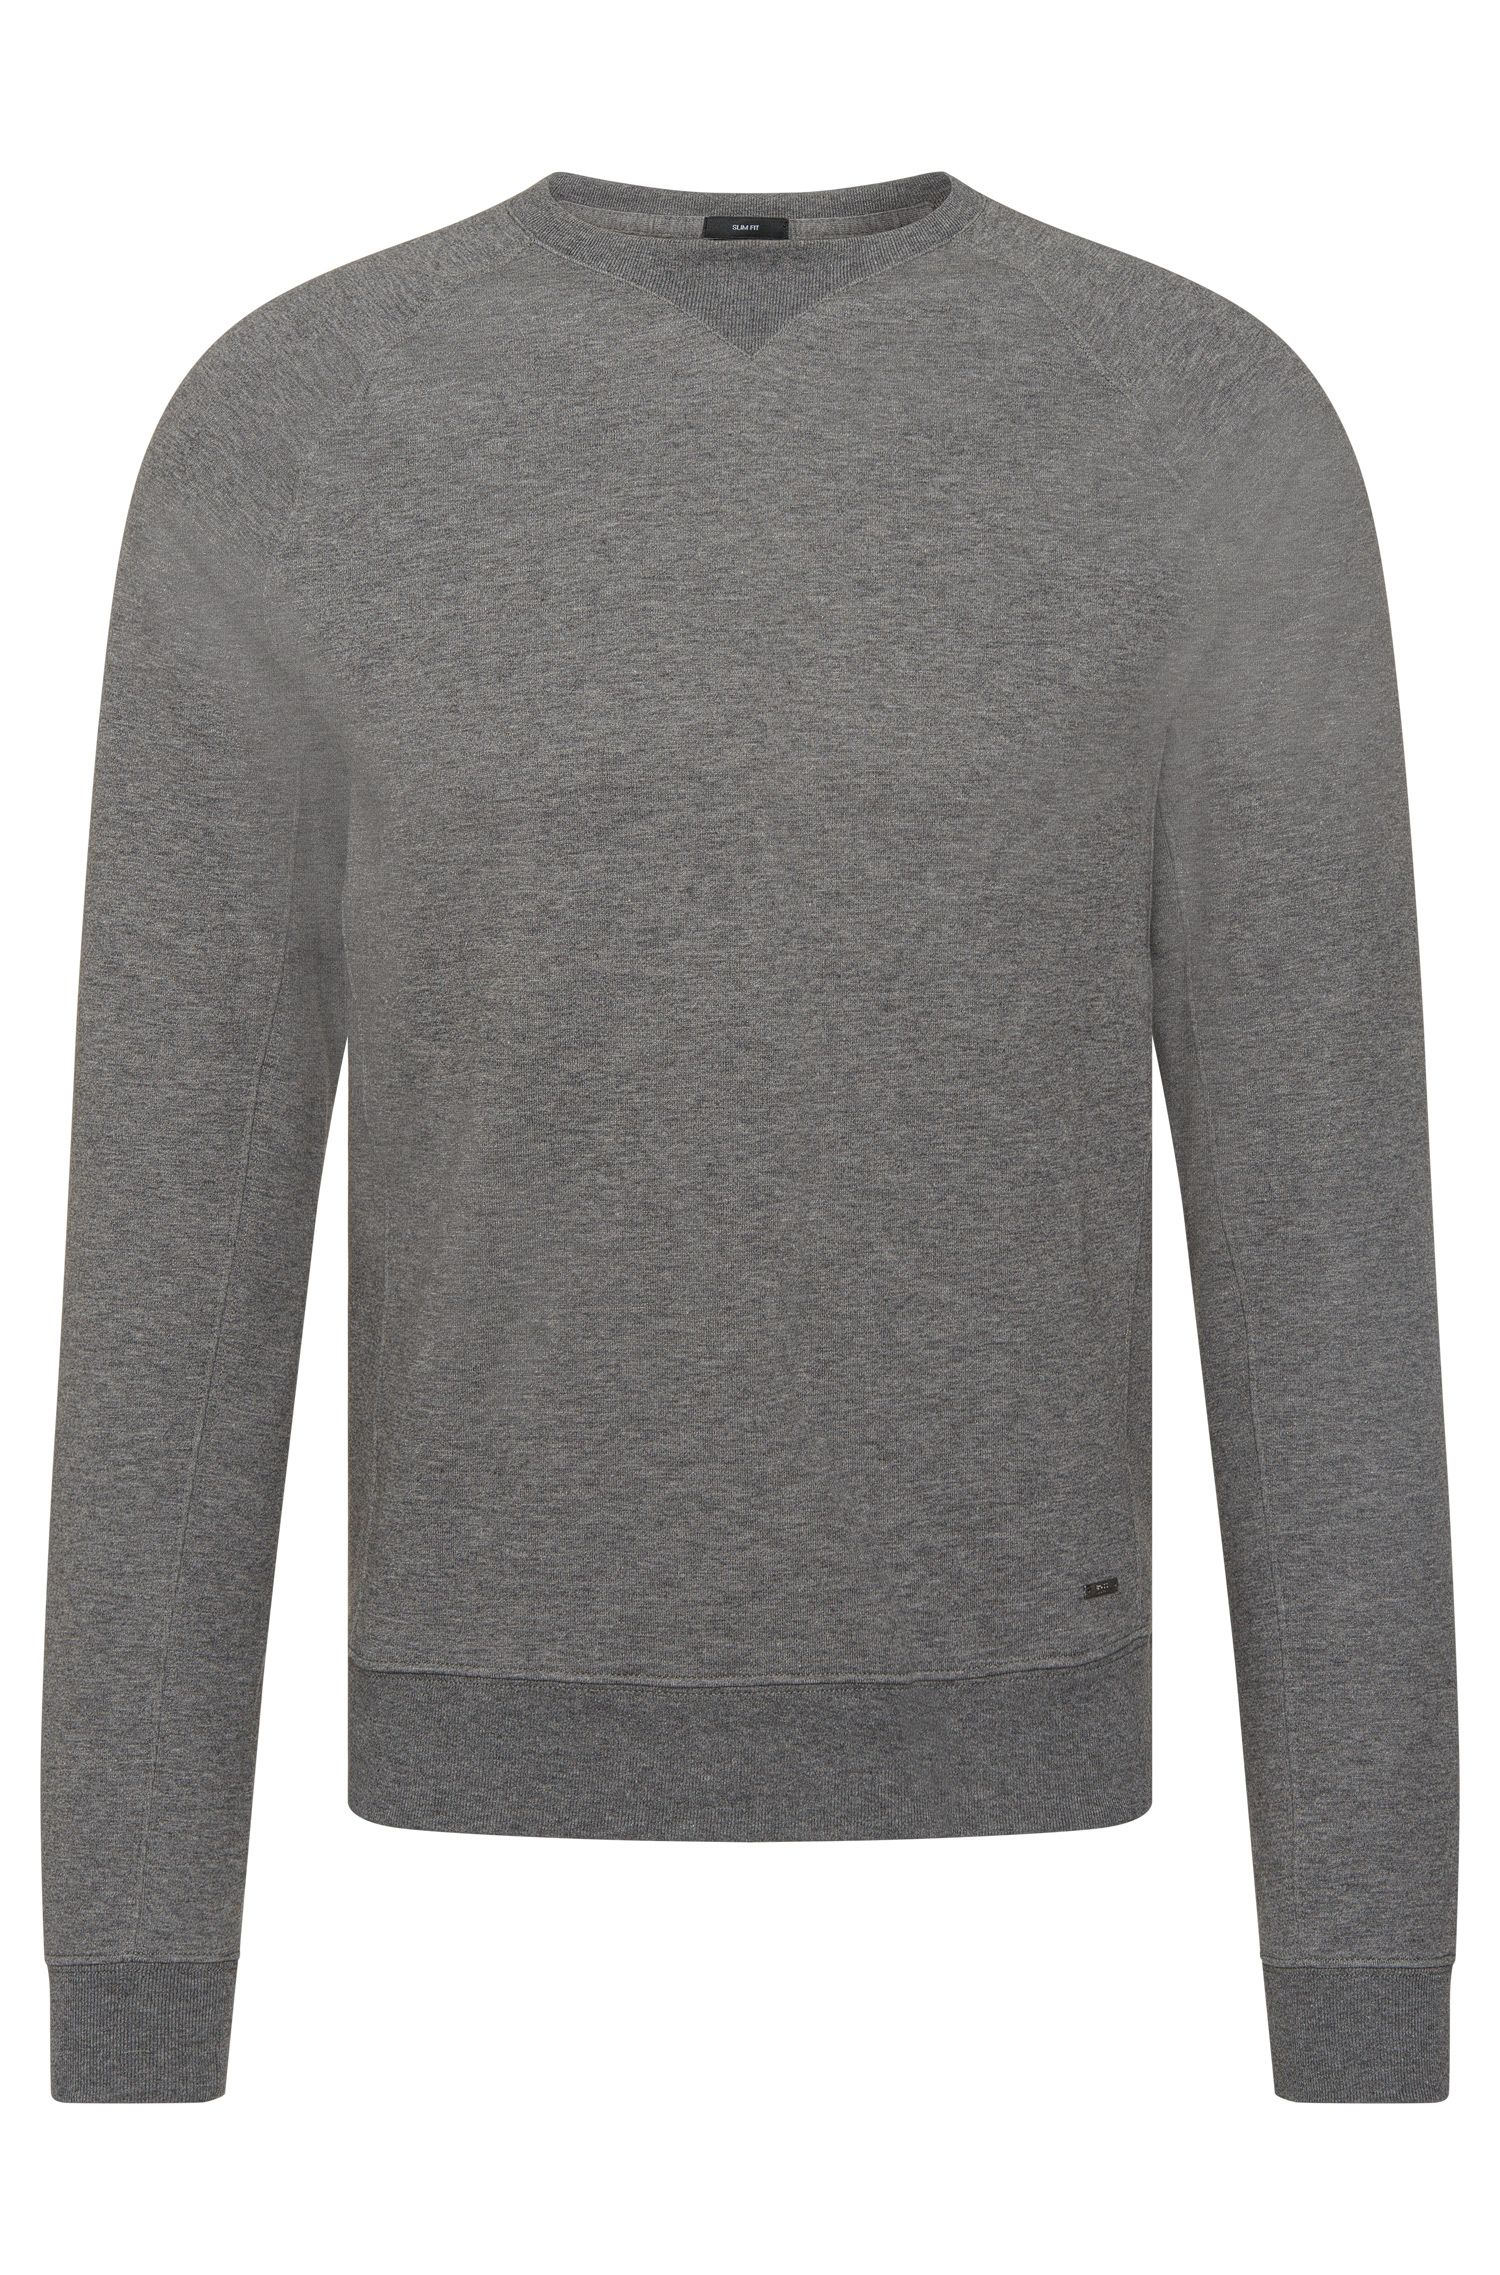 Sweat Slim Fit chiné en coton mélangé : « Skubic 13 »